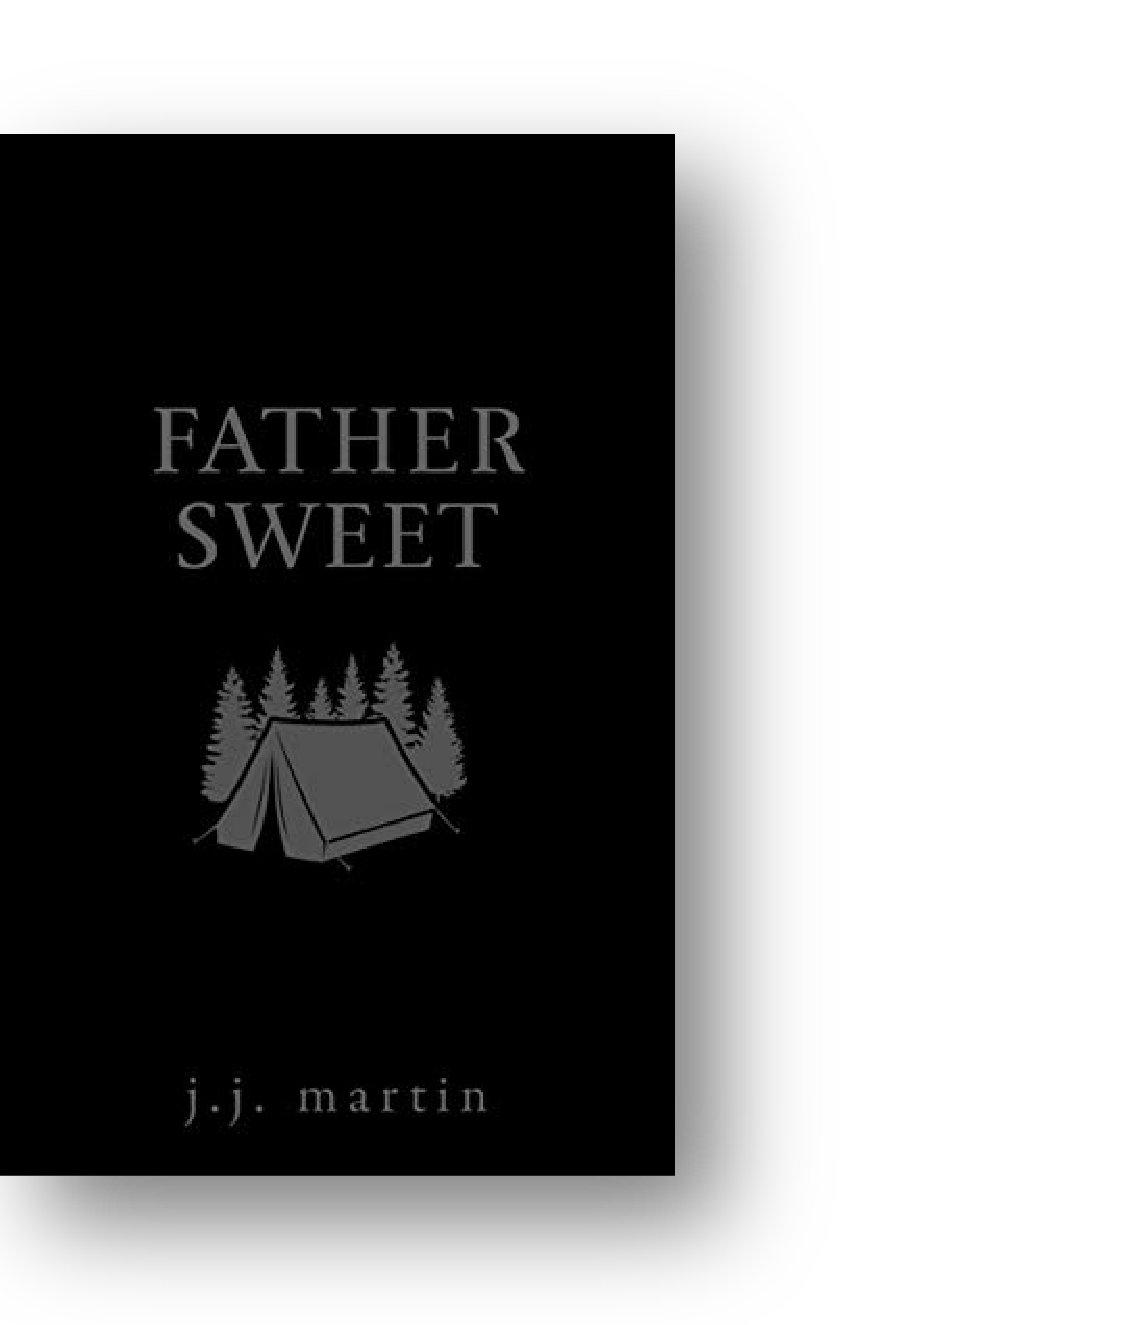 Father Sweet - Father Sweet is a timely and moving story about Canada's complicity in religious child abuse, unveiling not just dark personal secrets, but a large-scale conspiracy entangling children, families, and nations.